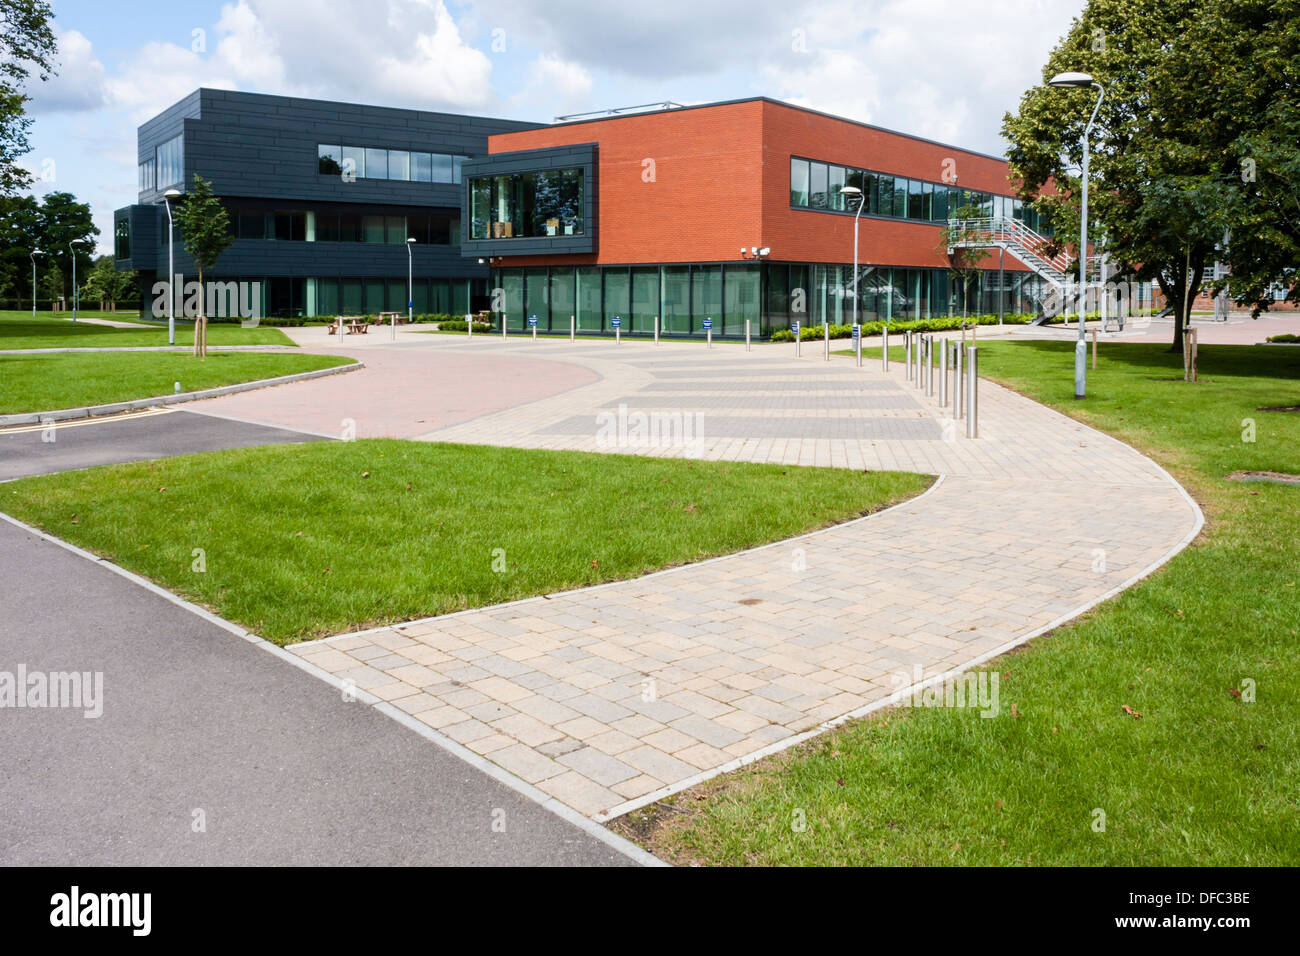 Reading Enterprise Centre at the University of Reading office and research space for innovative technology based businesses - Stock Image